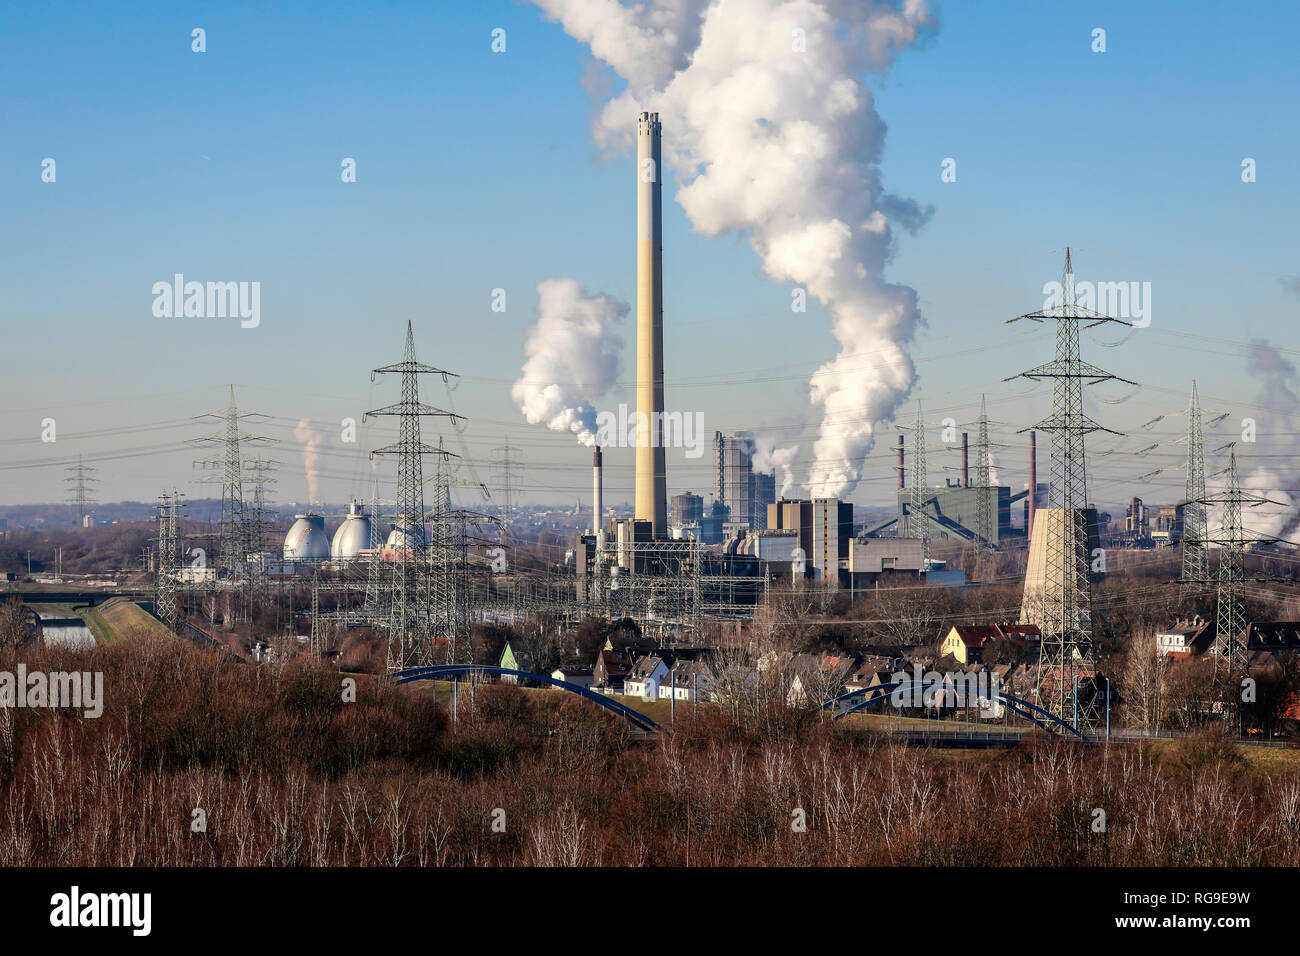 Essen, Ruhr area, North Rhine-Westphalia, Germany - Industrial landscape in the Ruhr area, in the middle the RWE waste incineration plant Essen Carnap Stock Photo